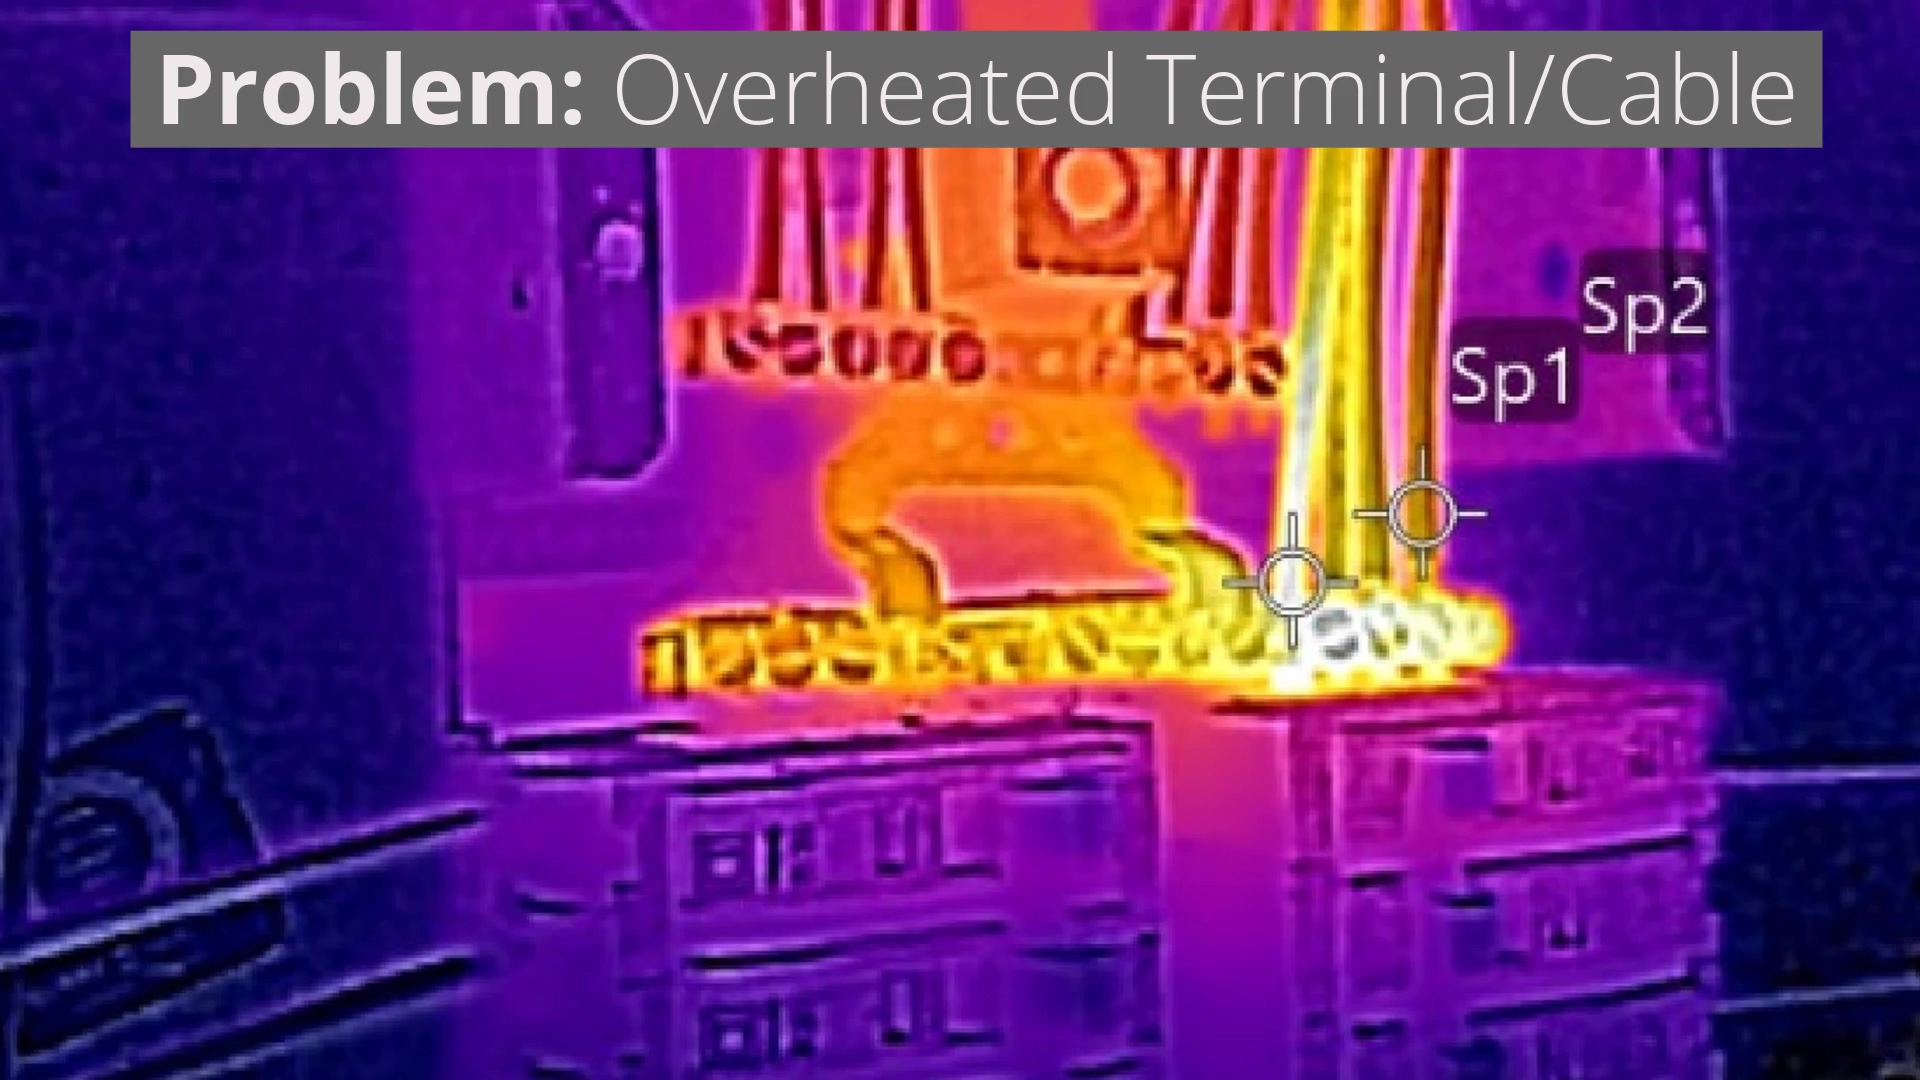 infrared-inspection-2 (1)